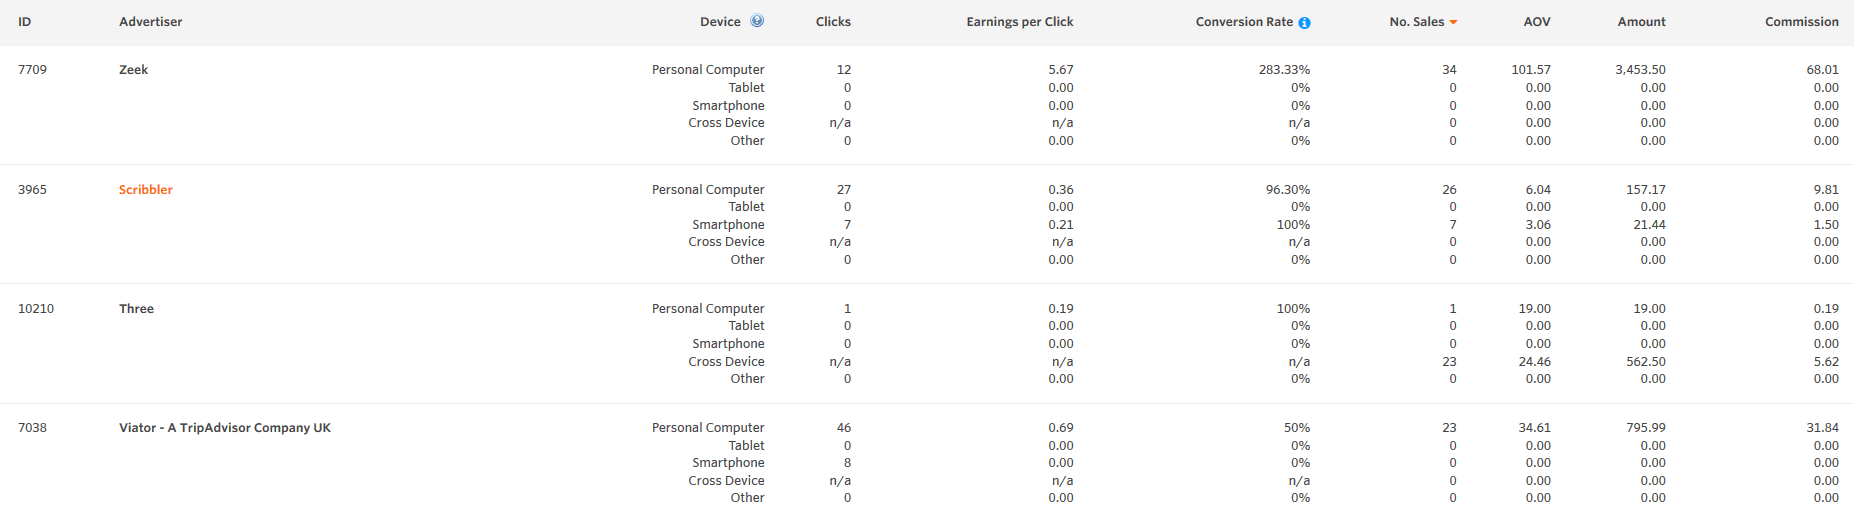 device performance report